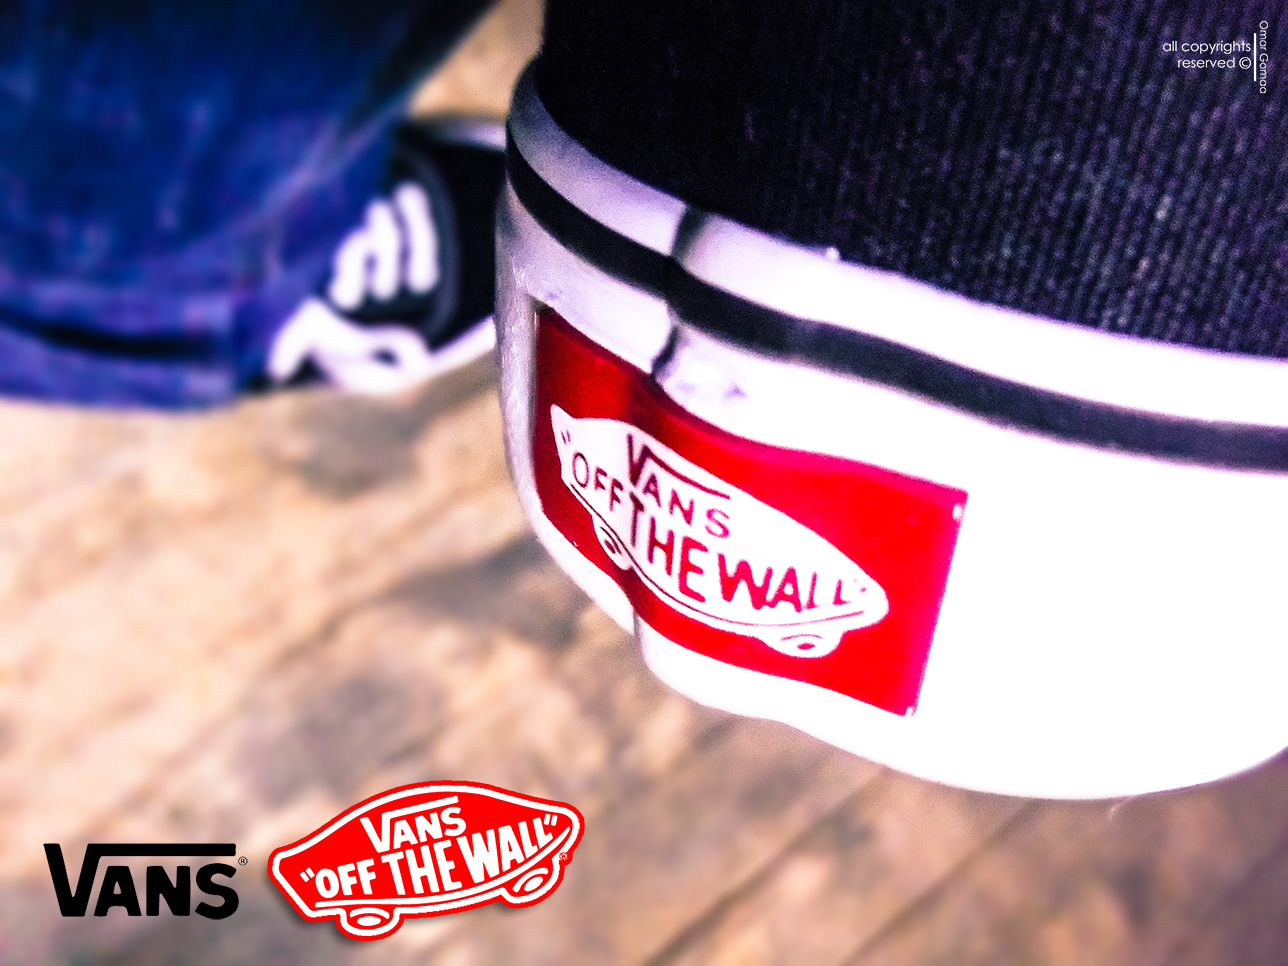 Off The Wall Arts vans off the wallomar-gomaa on deviantart